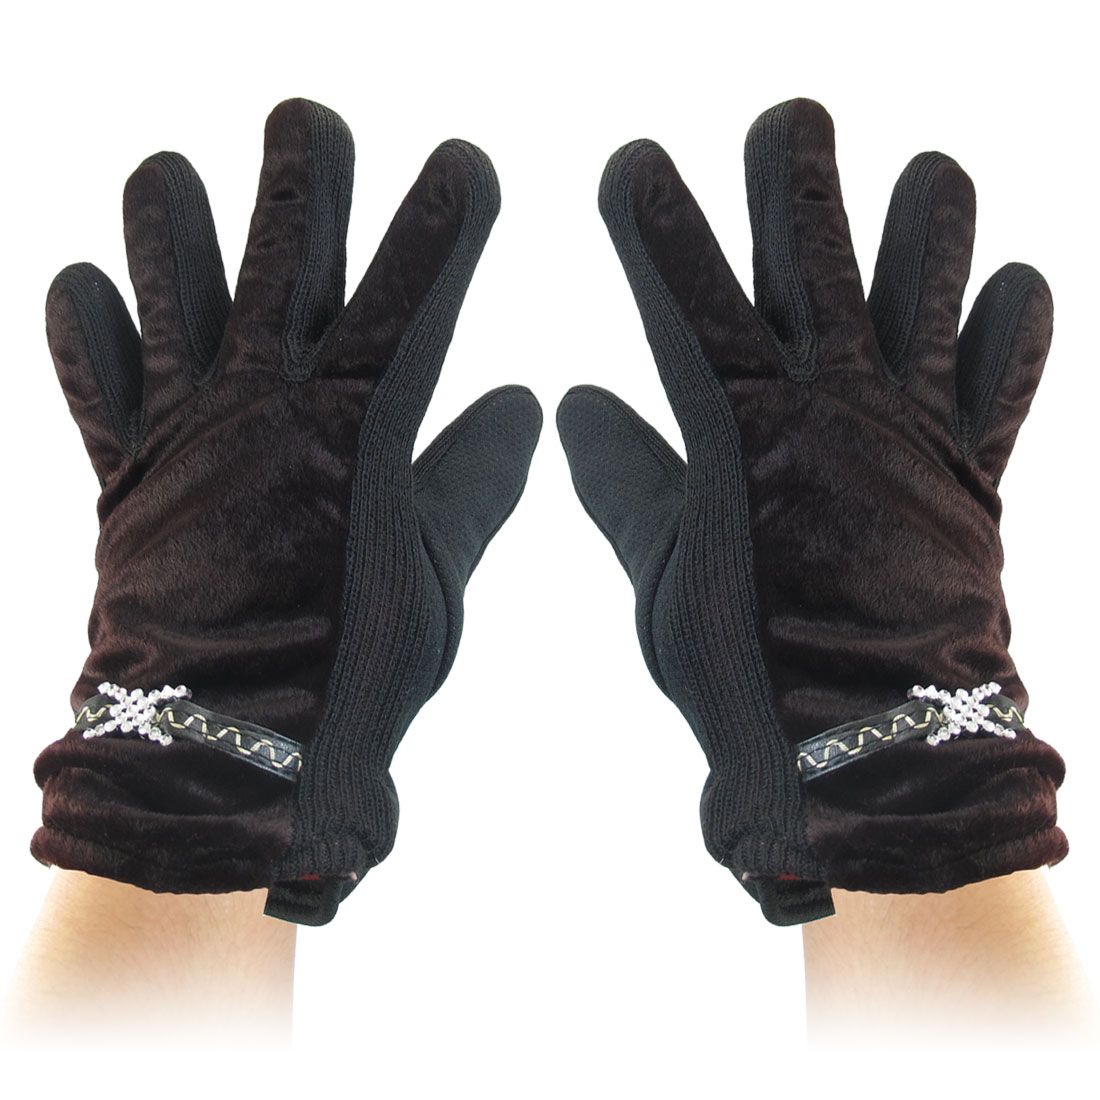 Cross Accent Full Finger Winter Gloves Coffee Color Black for Ladies